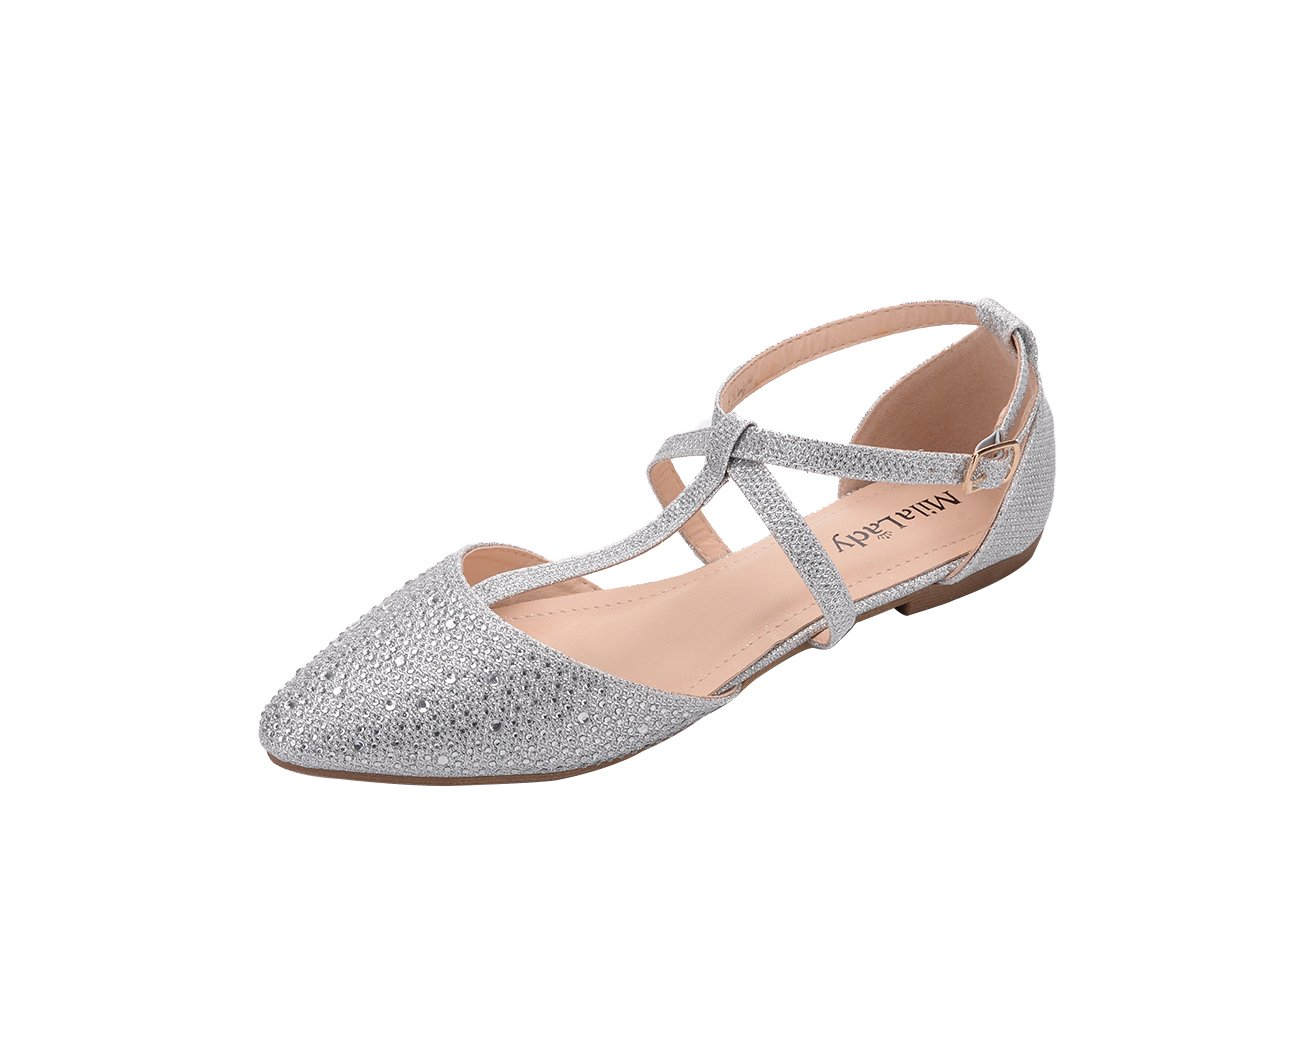 Mila Lady Laurel Womens Pointed Toe Ankle Wrap T-Strap D'Orsay Flats,SILVER9